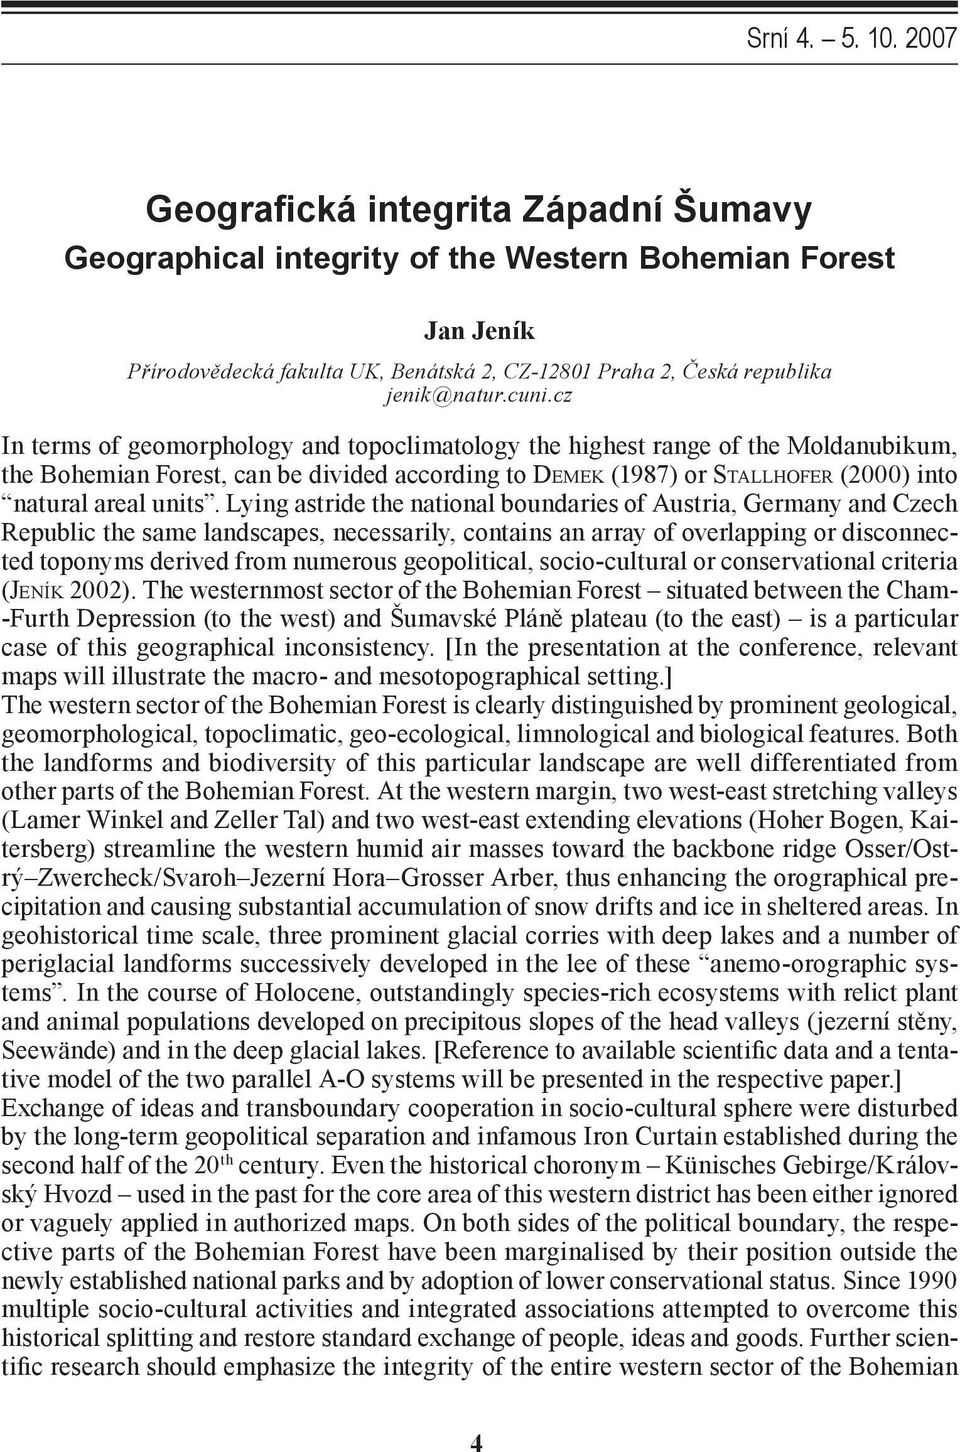 cz In terms of geomorphology and topoclimatology the highest range of the Moldanubikum, the Bohemian Forest, can be divided according to DEMEK (1987) or STALLHOFER (2000) into natural areal units.